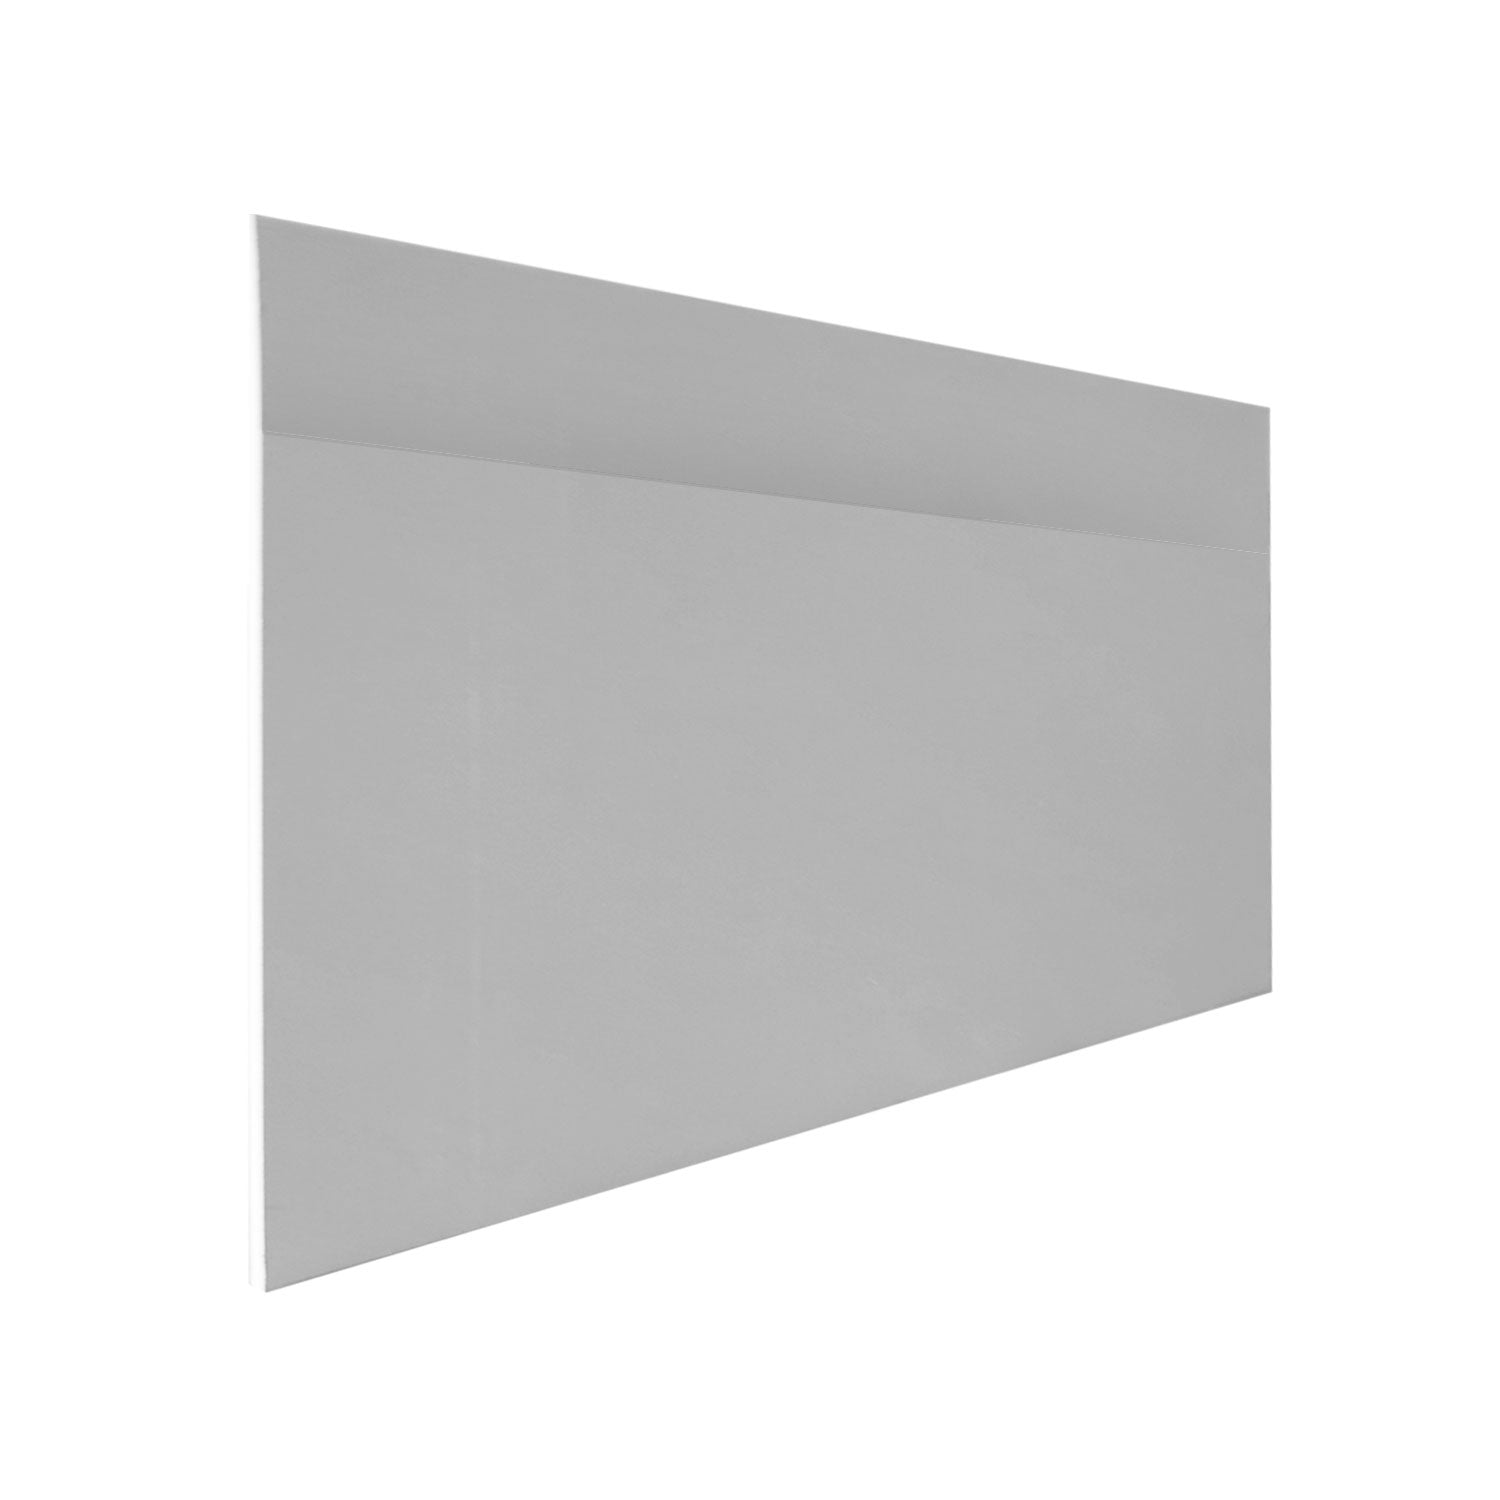 Plasterboard 8' x 4' x 12.5mm Square Edge